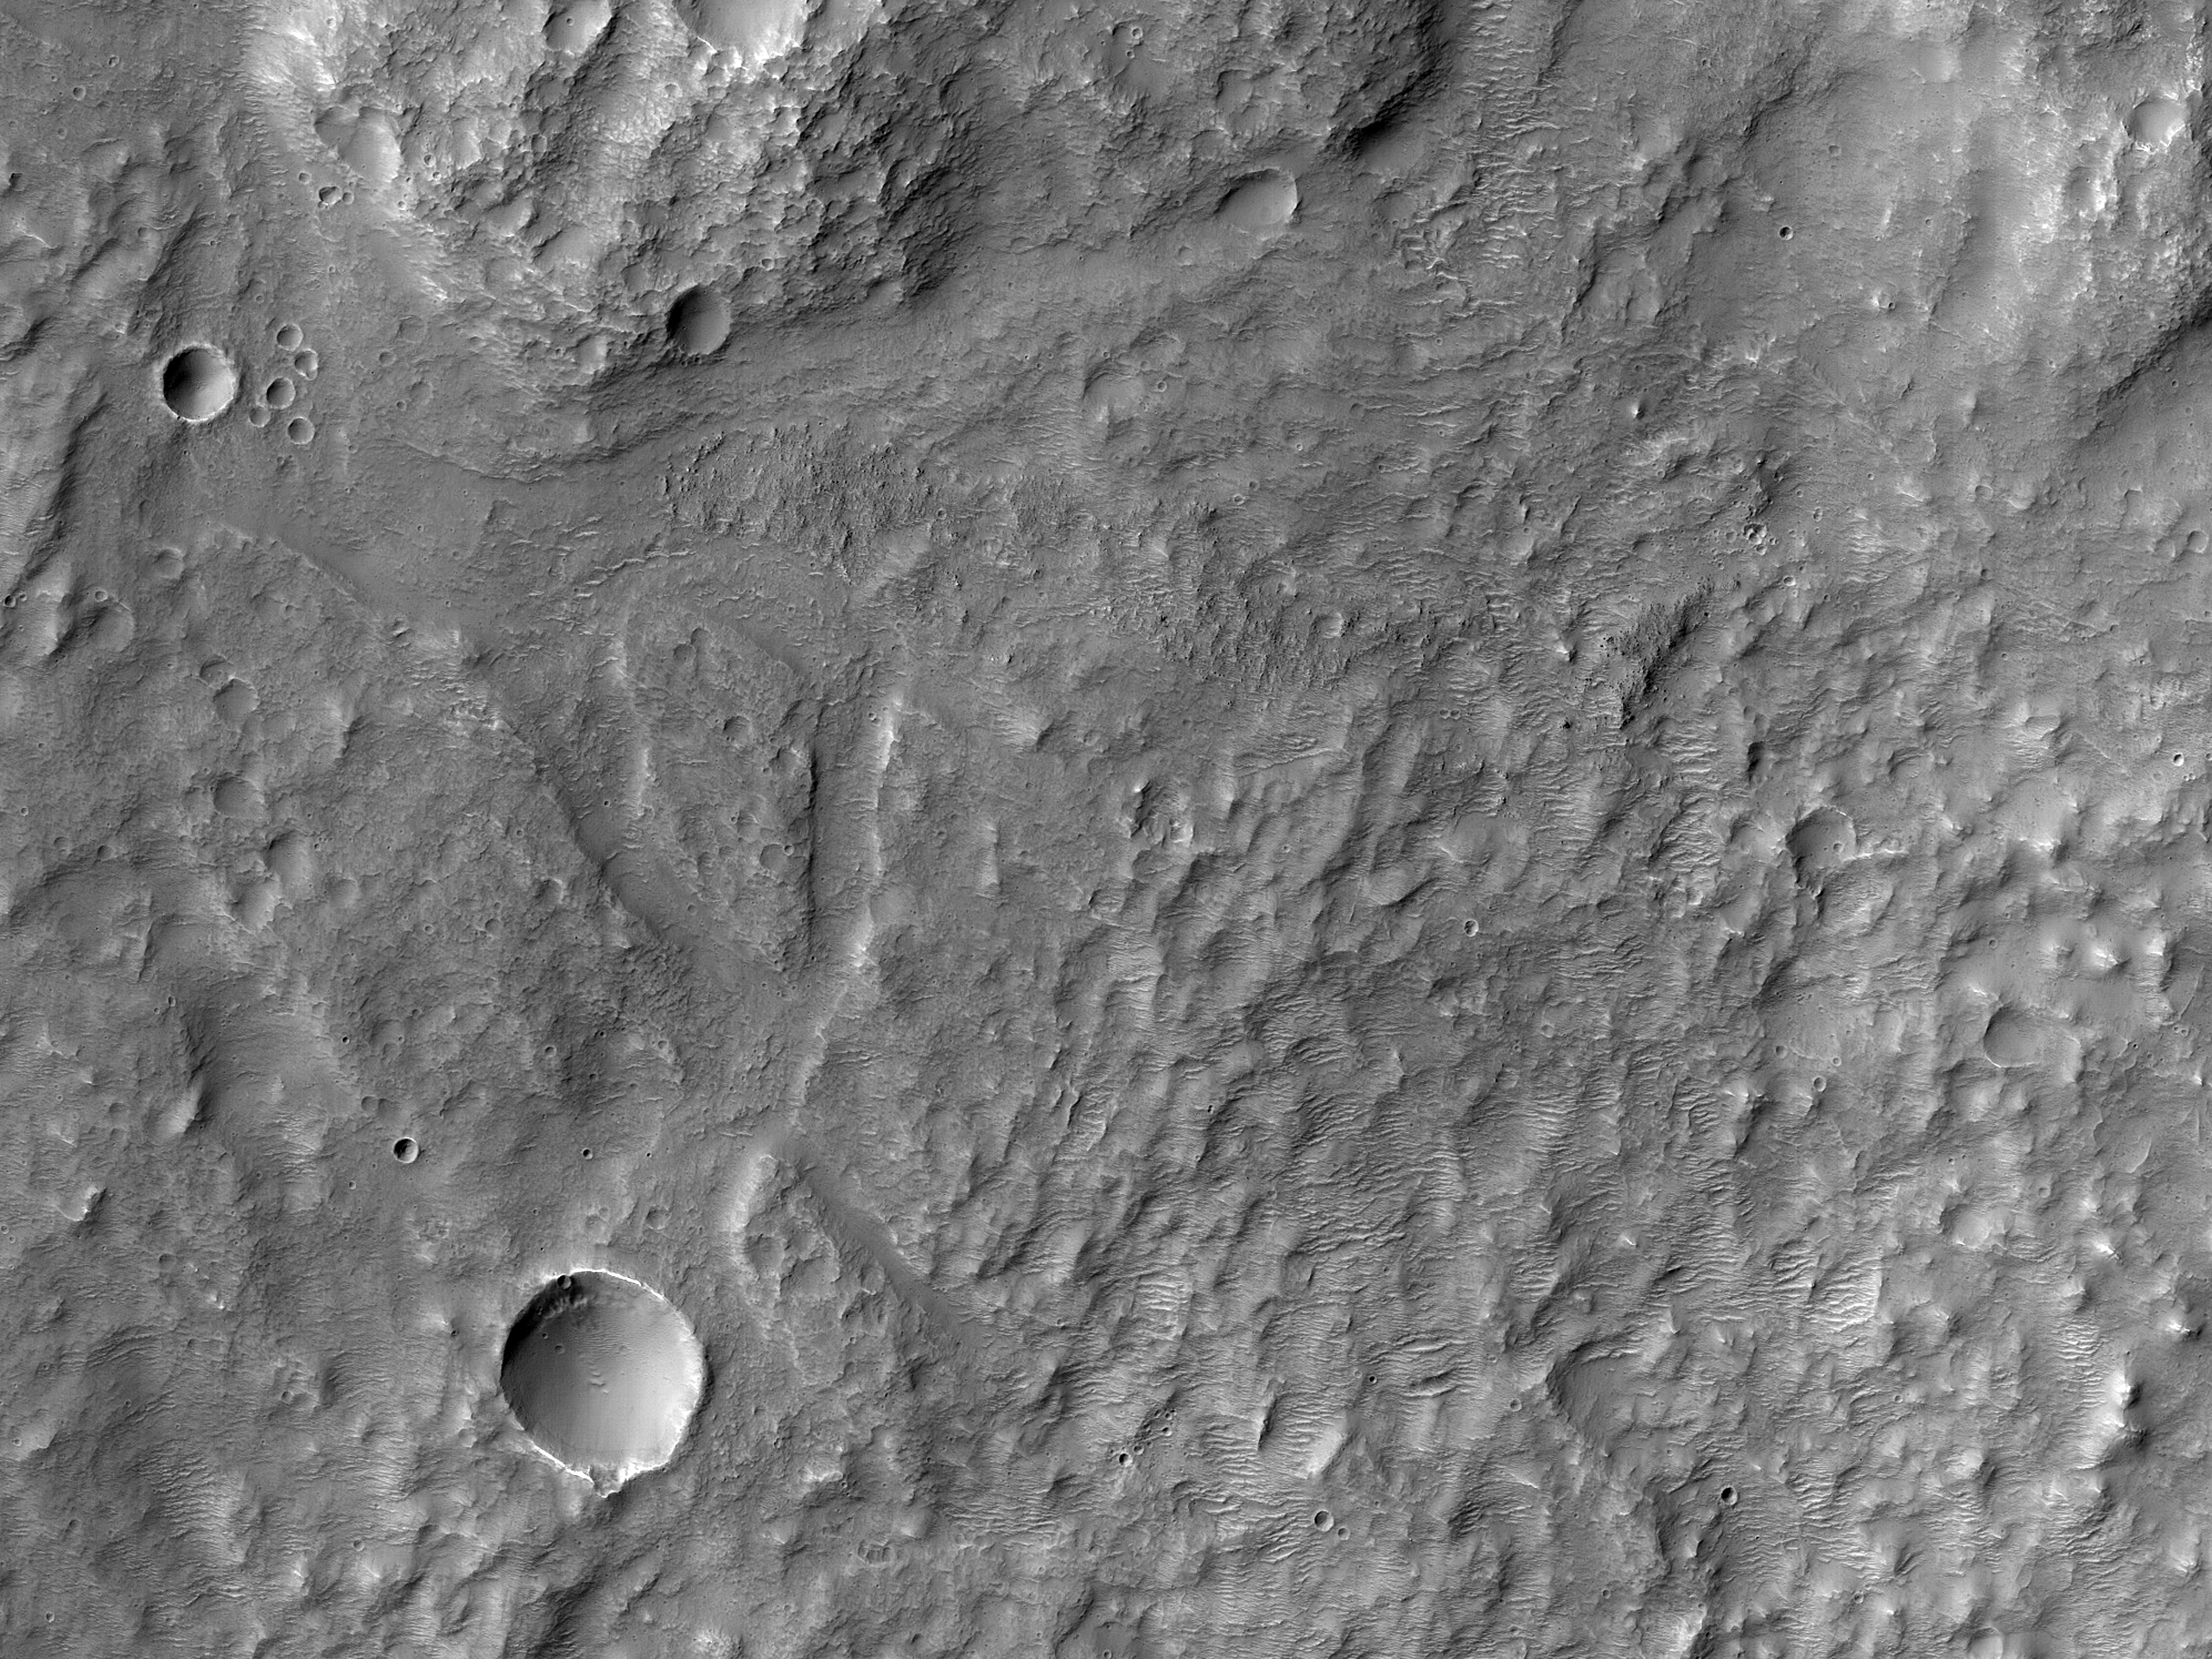 Near Anseris Mons